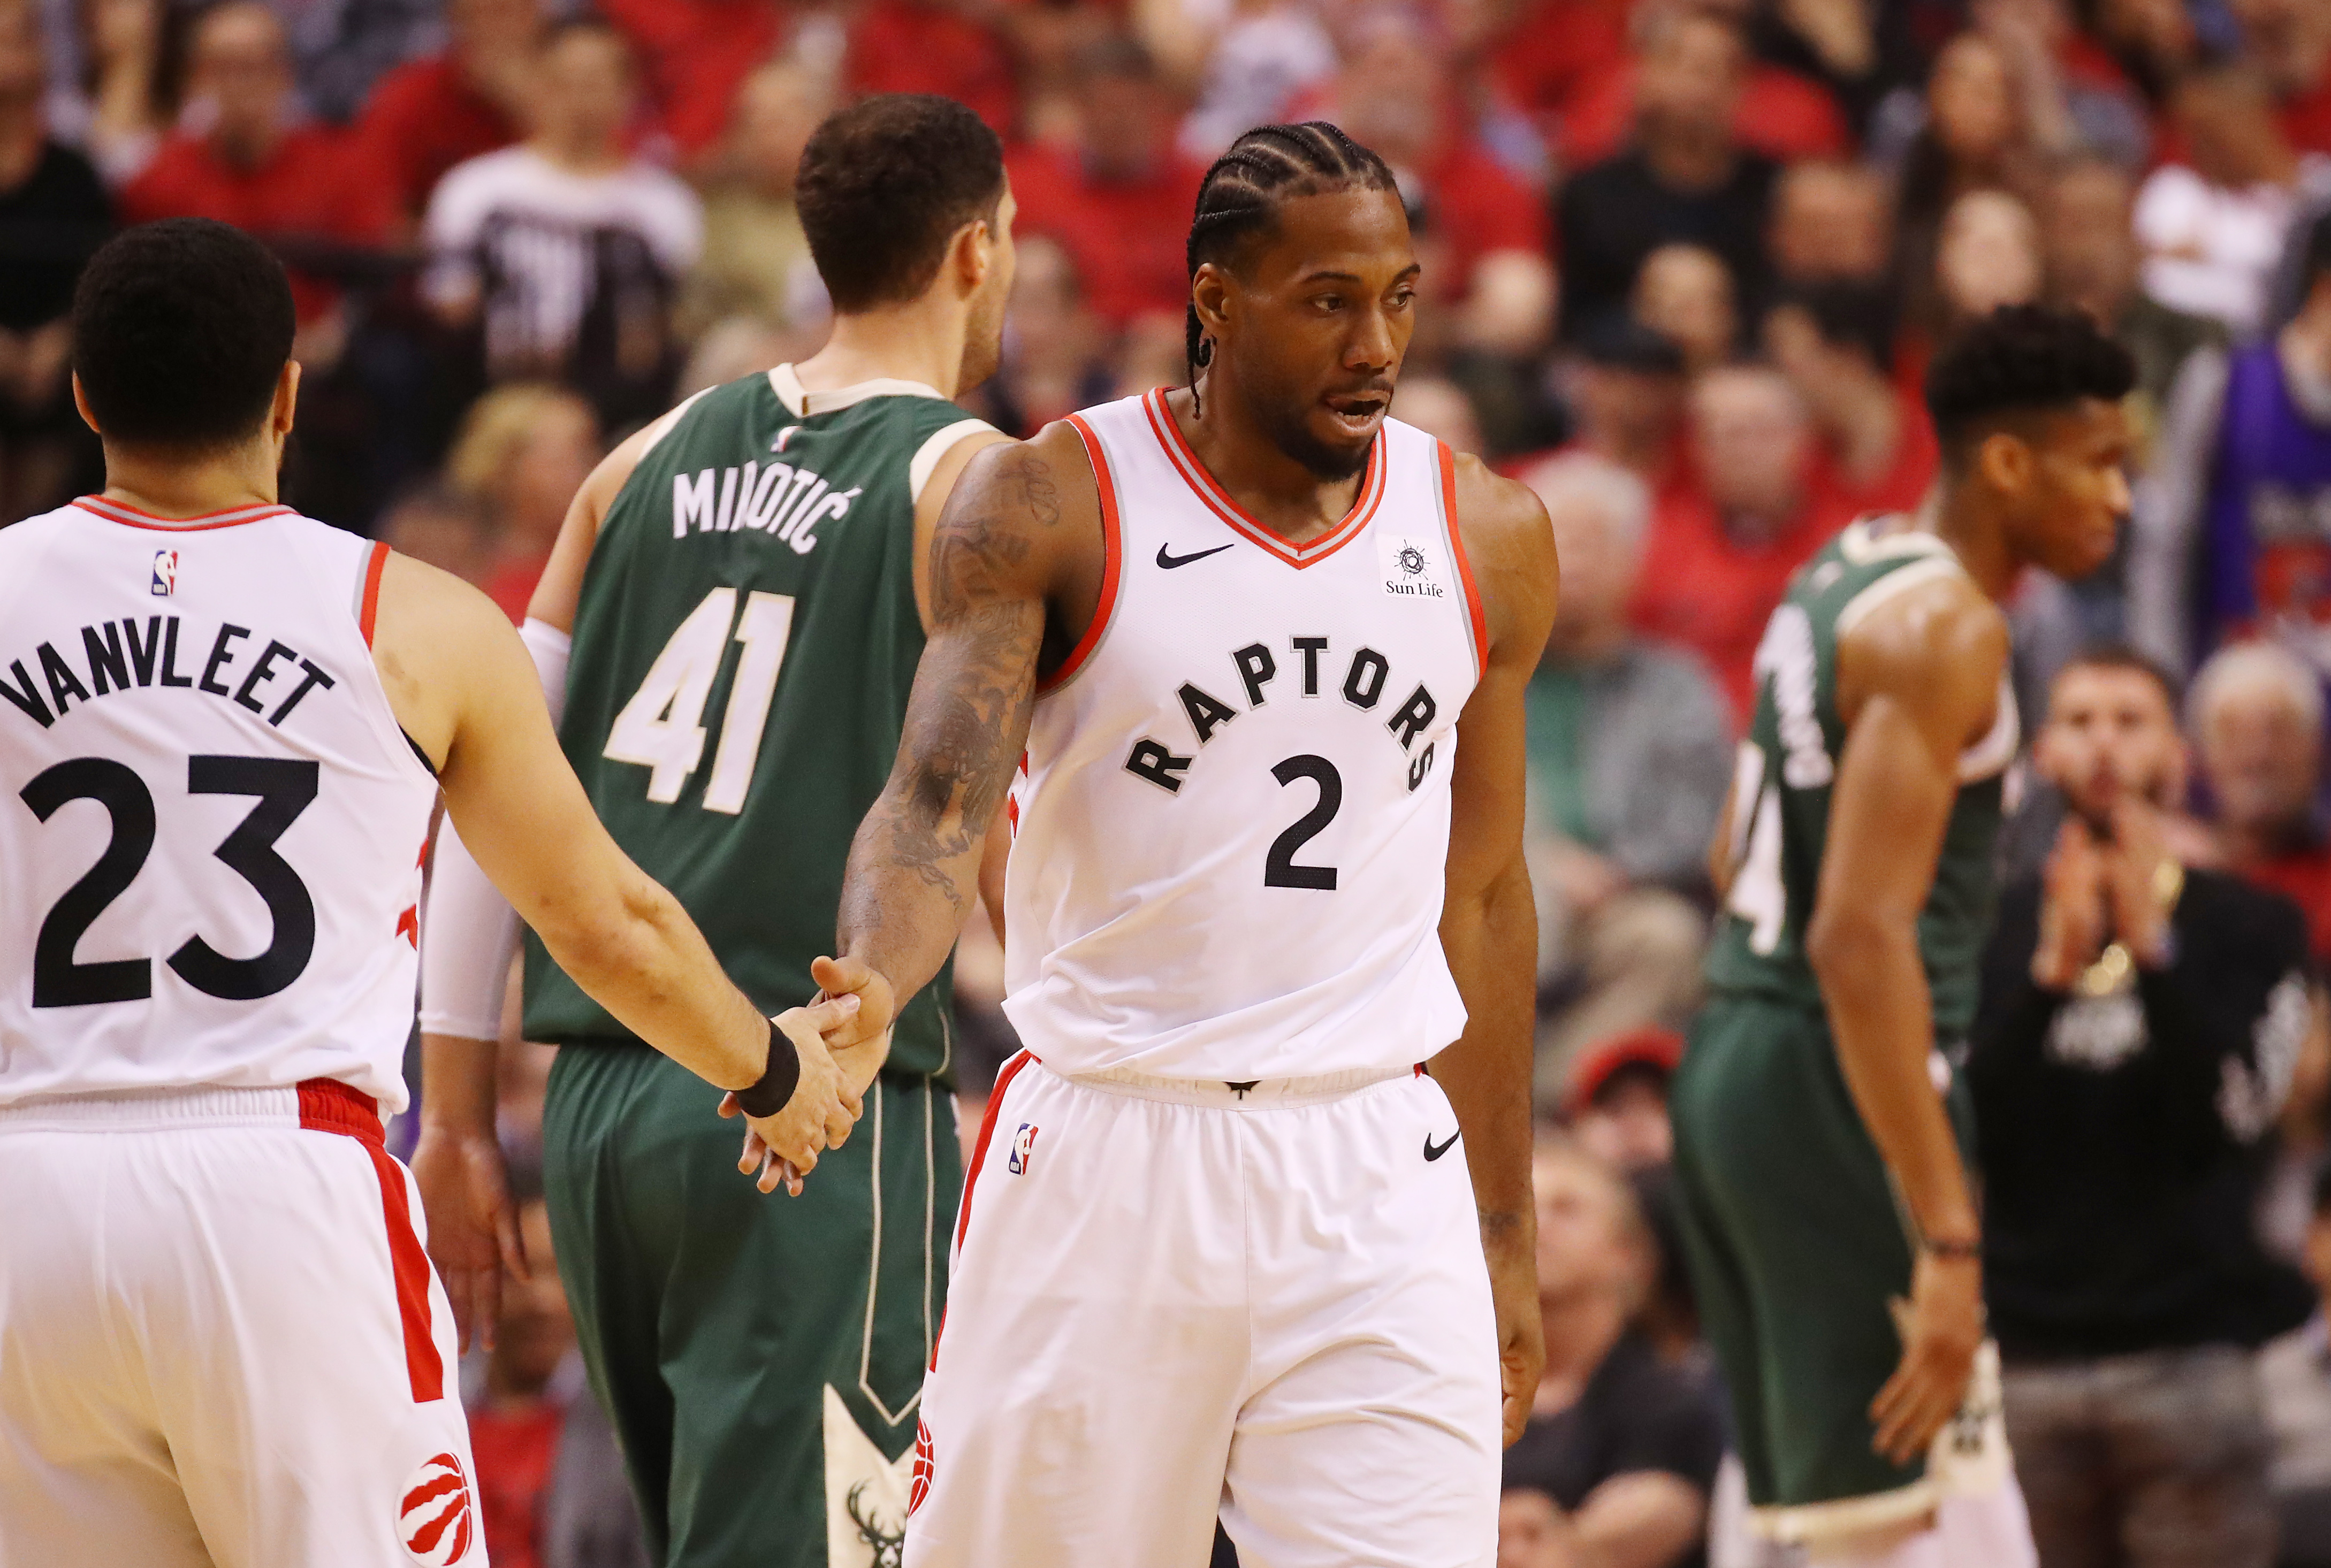 Raptors betting underdogs at Bucks in pivotal Game 5